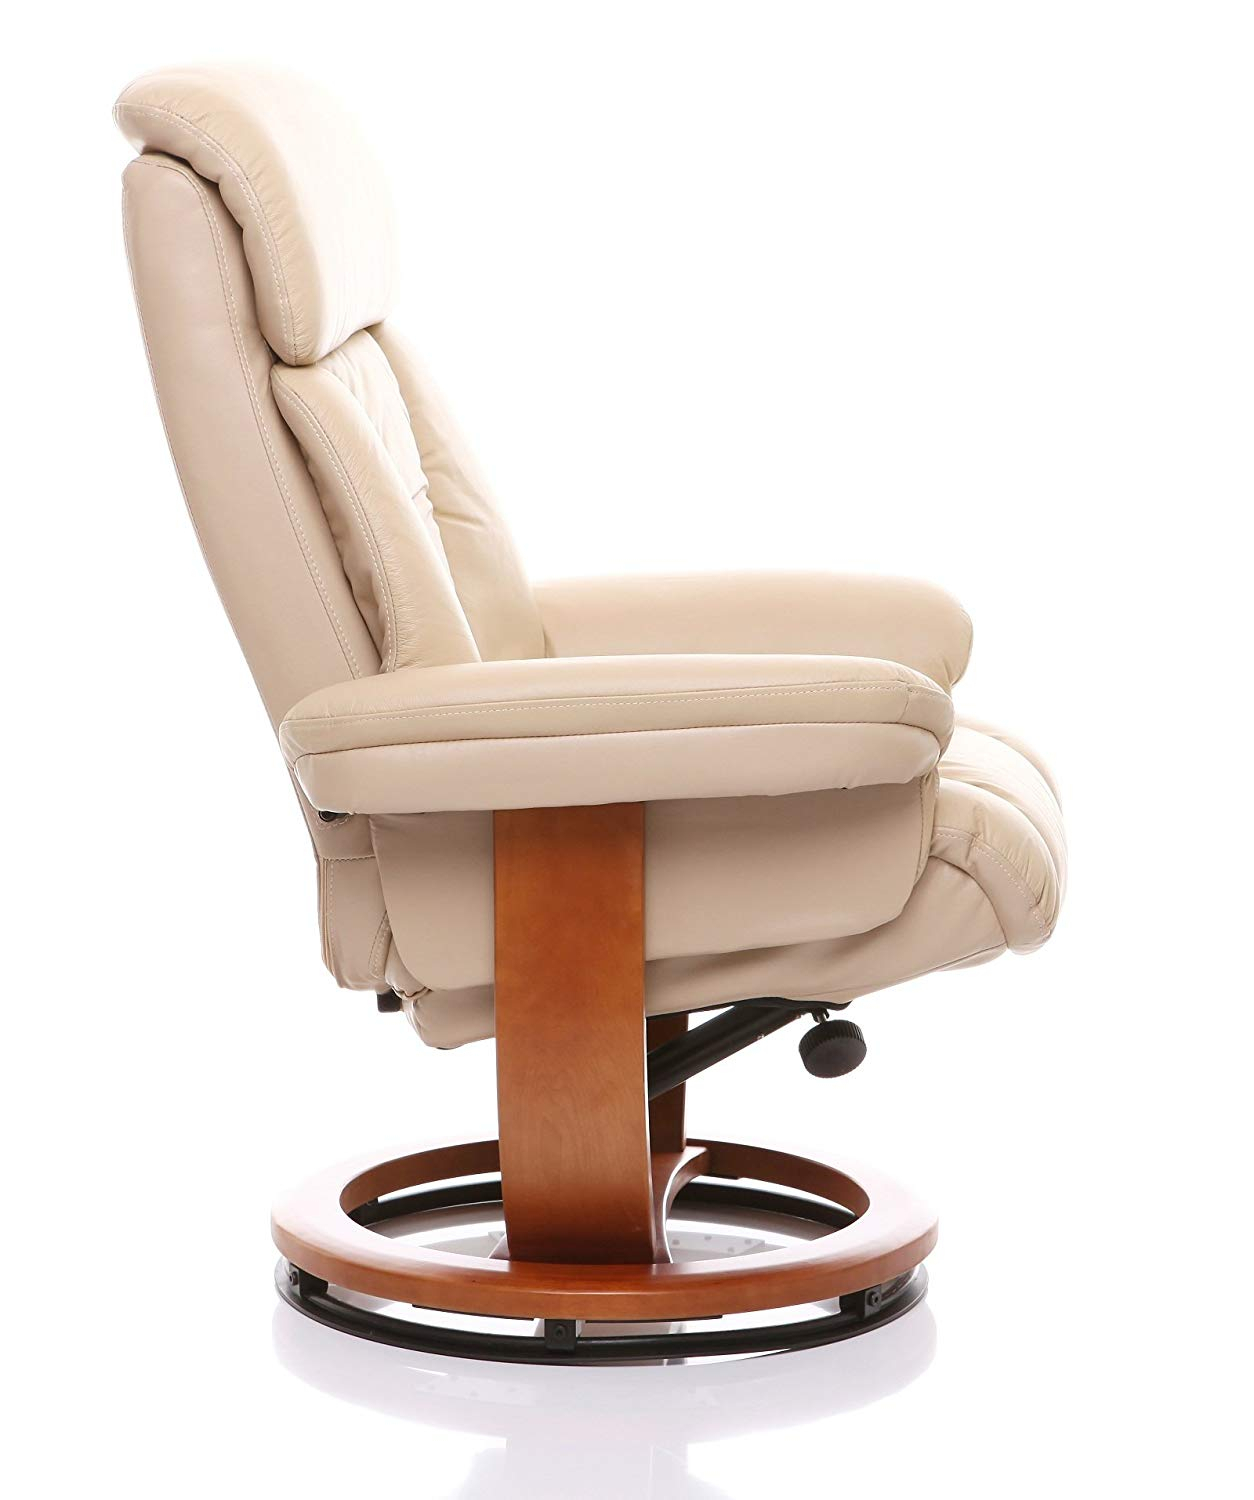 Gfa The Saigon Genuine Leather Recliner Swivel Chair Matching With Regard To Amala Bone Leather Reclining Swivel Chairs (Photo 20 of 20)